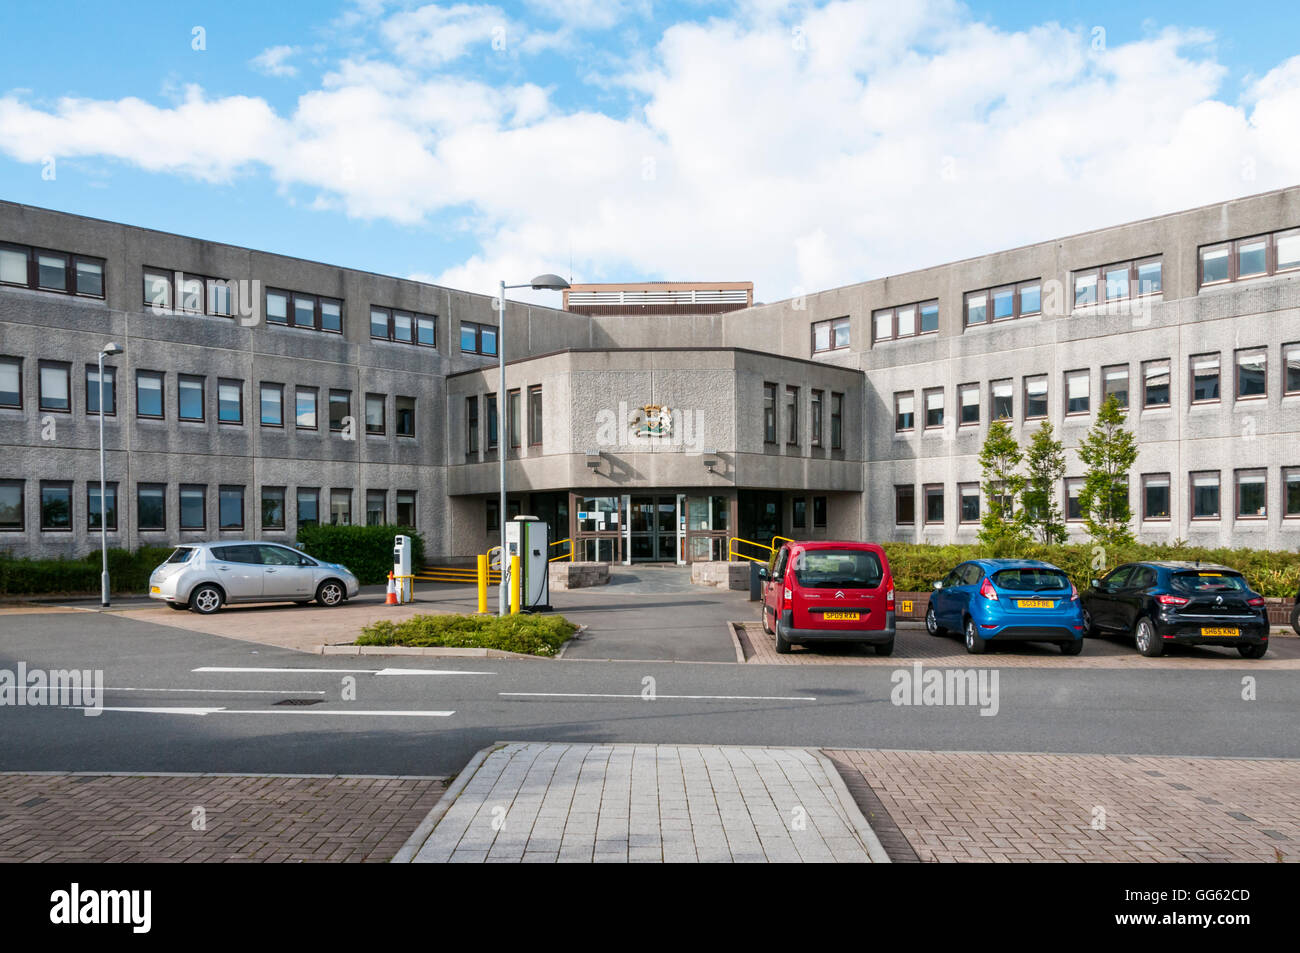 The offices of Comhairle nan Eilean Siar, local government for Na h-Eileanan Siar or the Outer Hebrides. - Stock Image